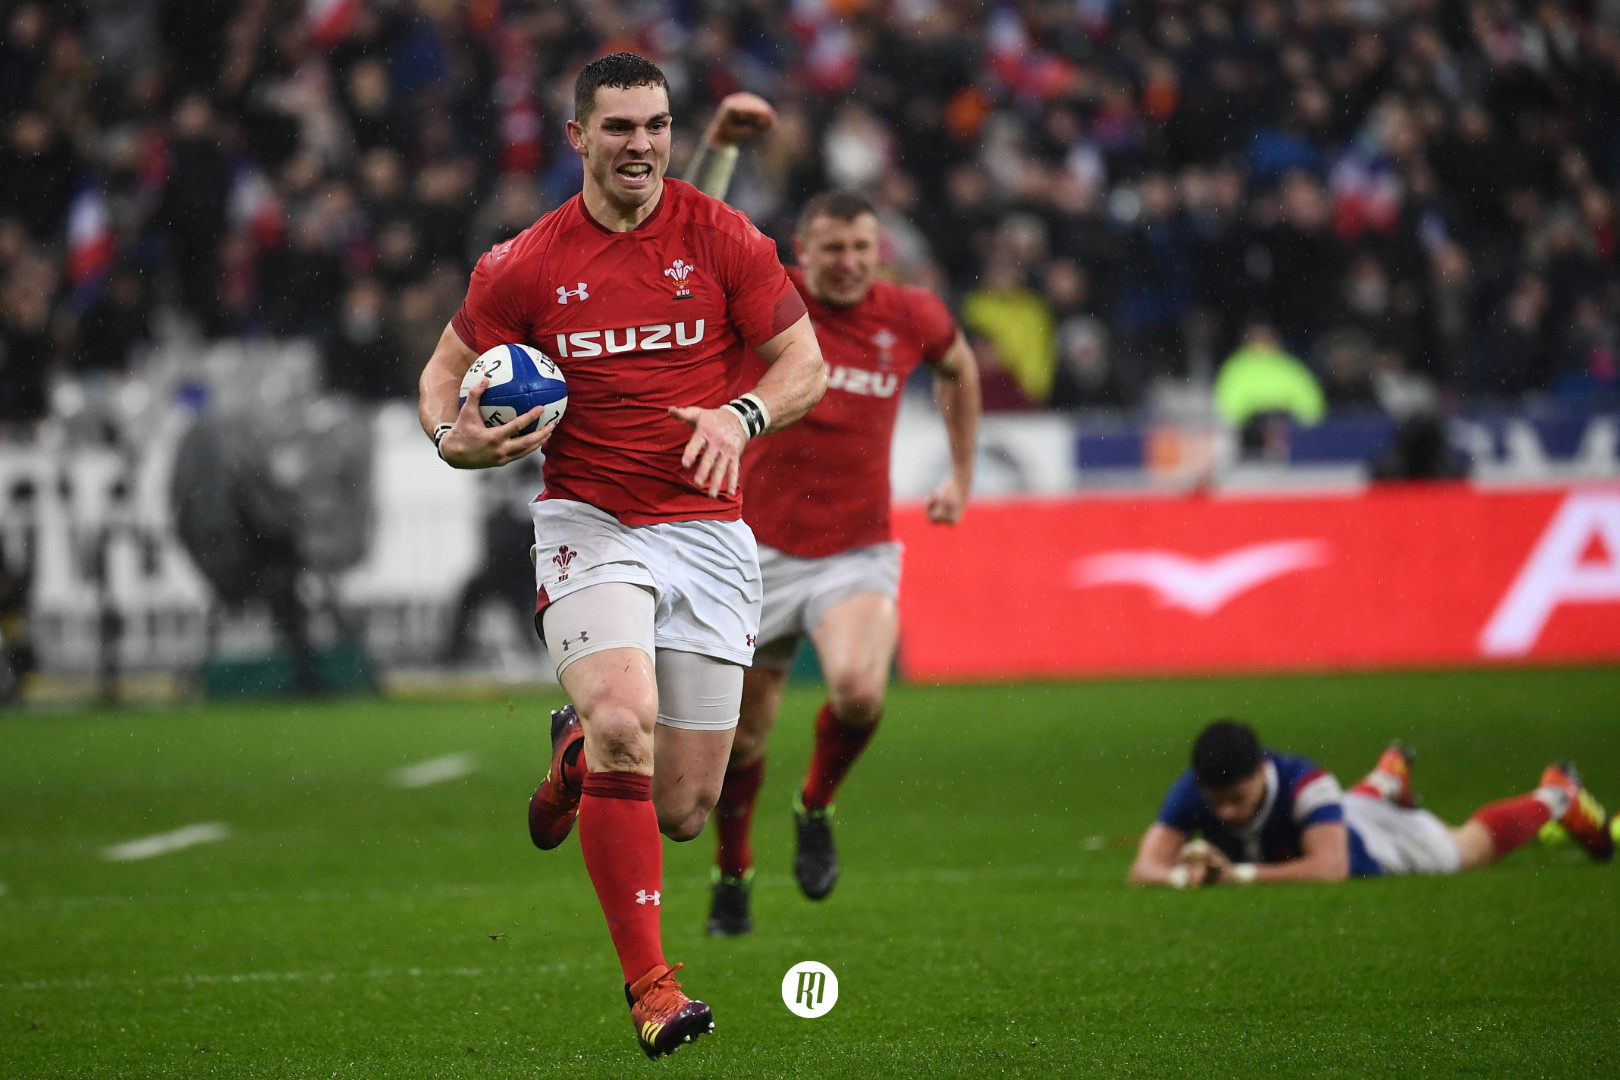 Wales vs France: Fresh legs, revolving doors and philosophes